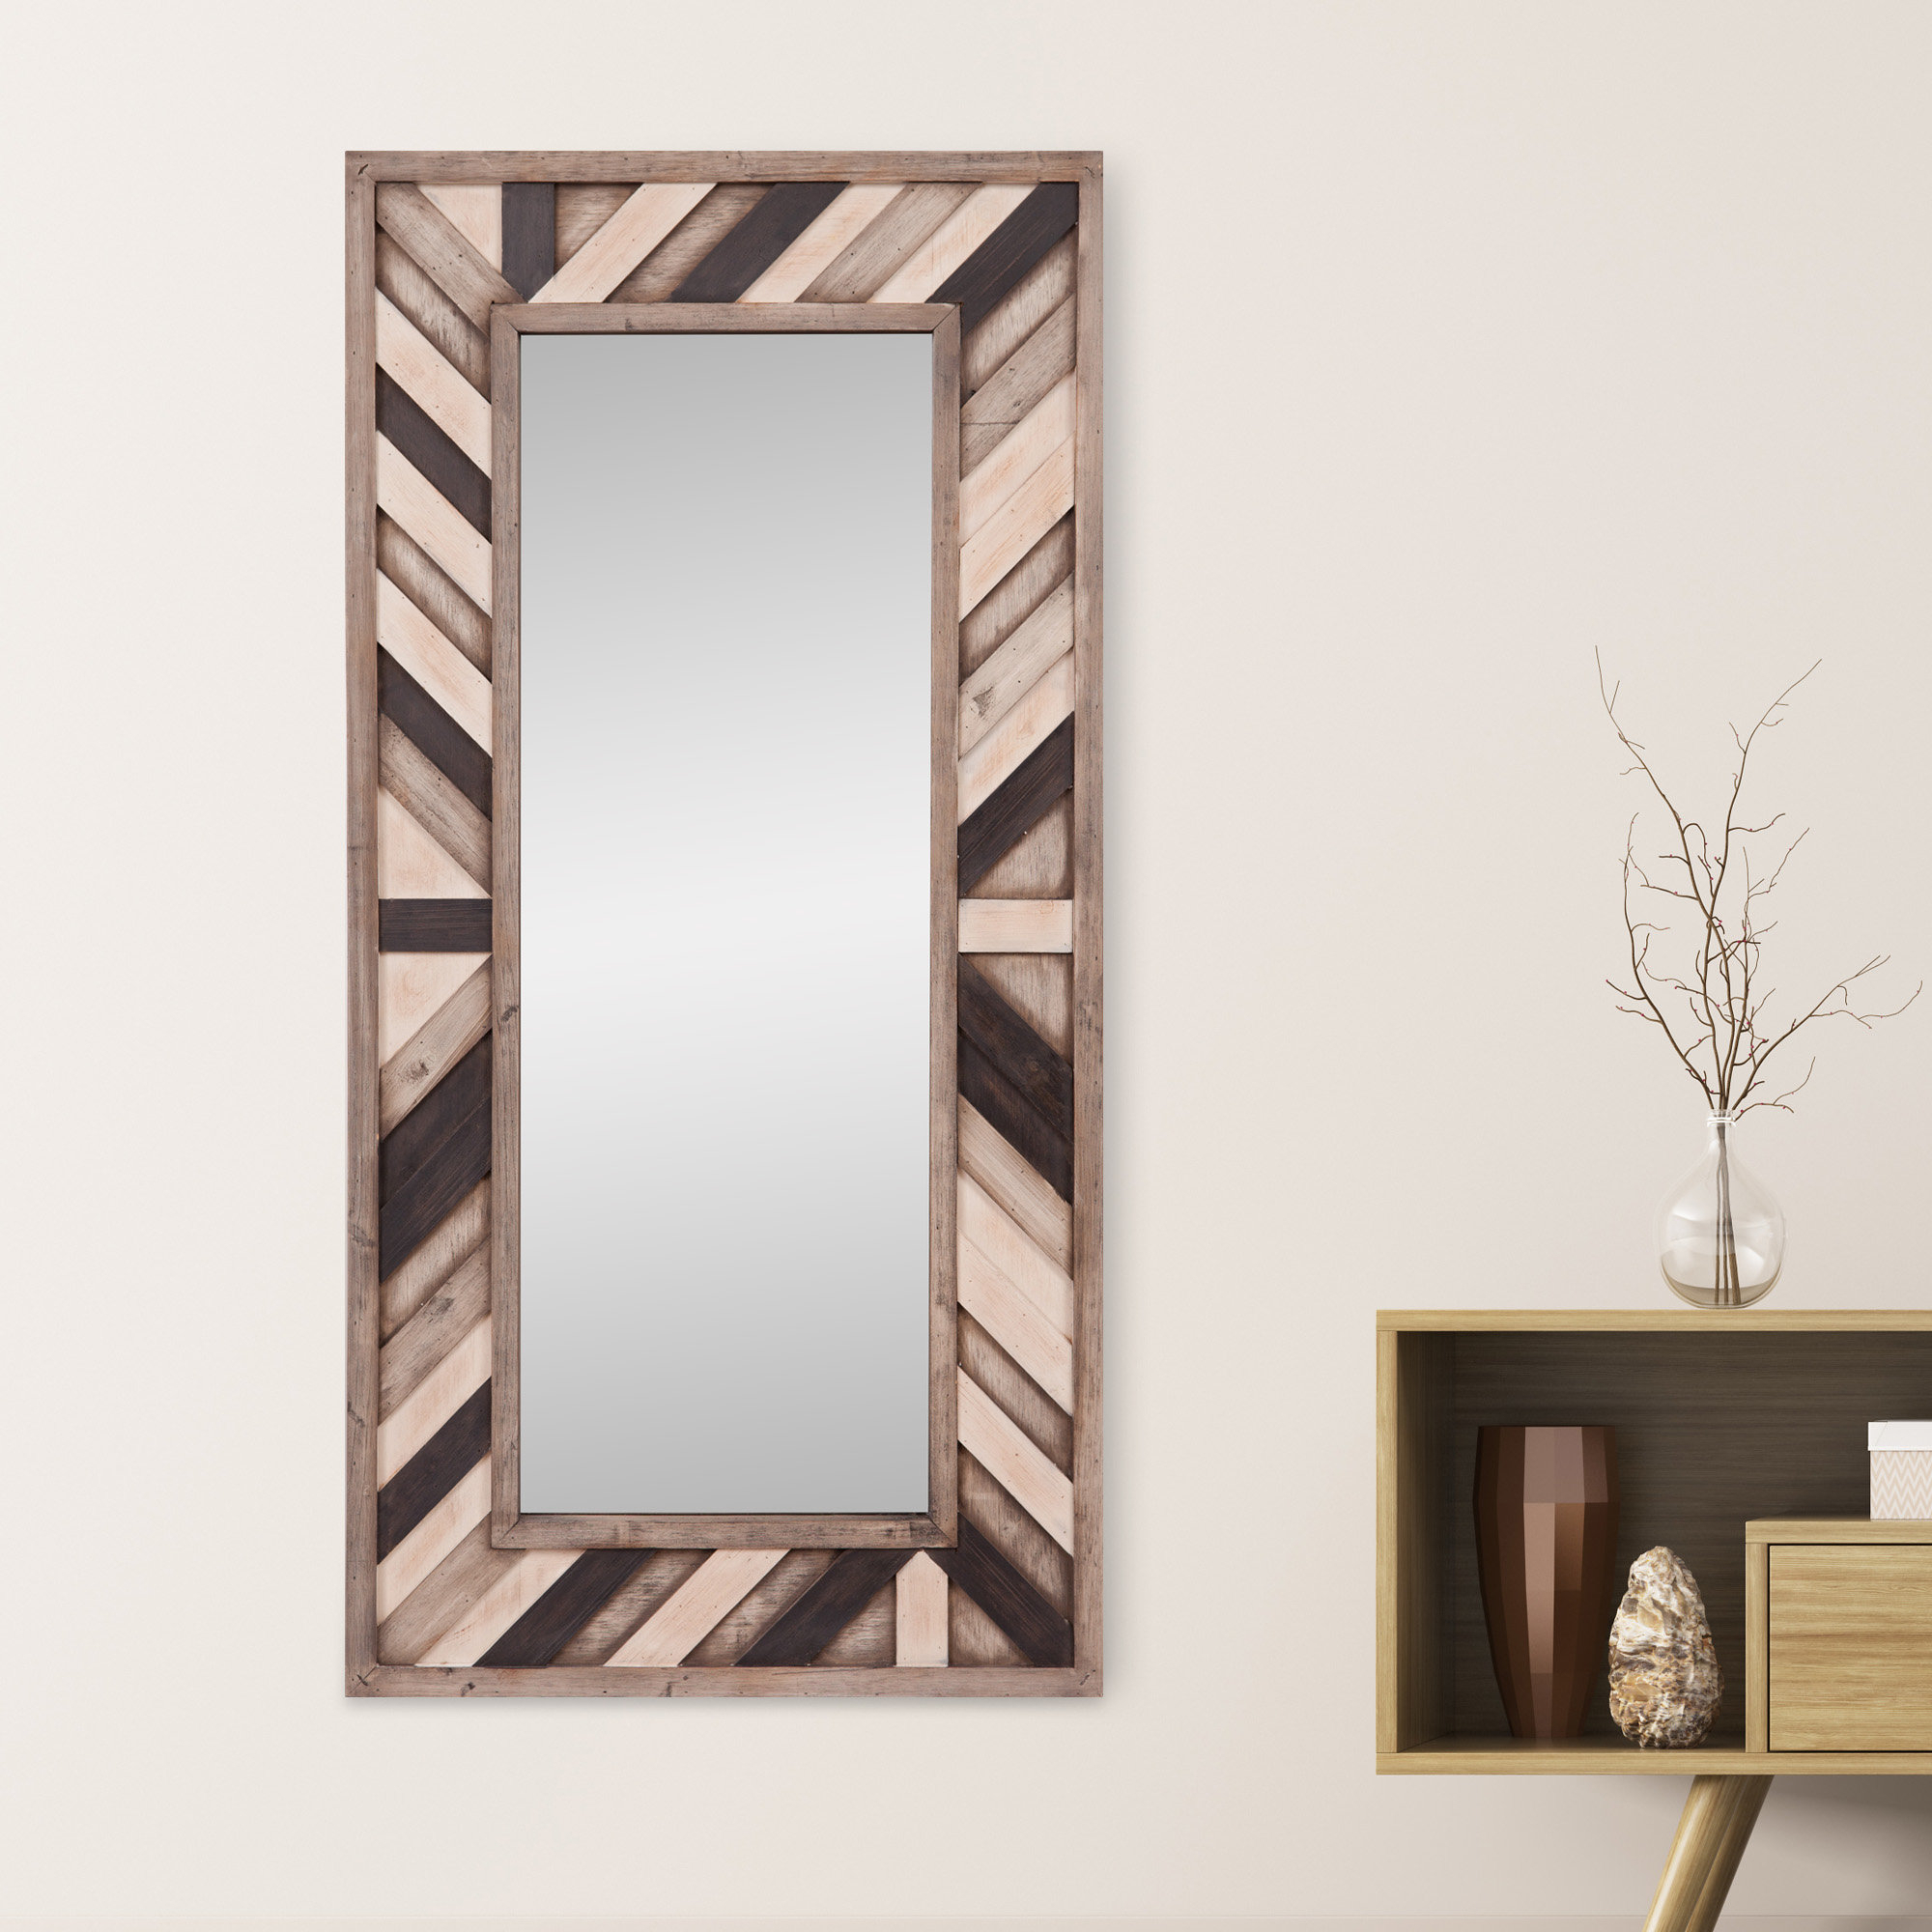 Catalano Rustic Wood Wall Mounted Mirror With Polen Traditional Wall Mirrors (View 5 of 30)